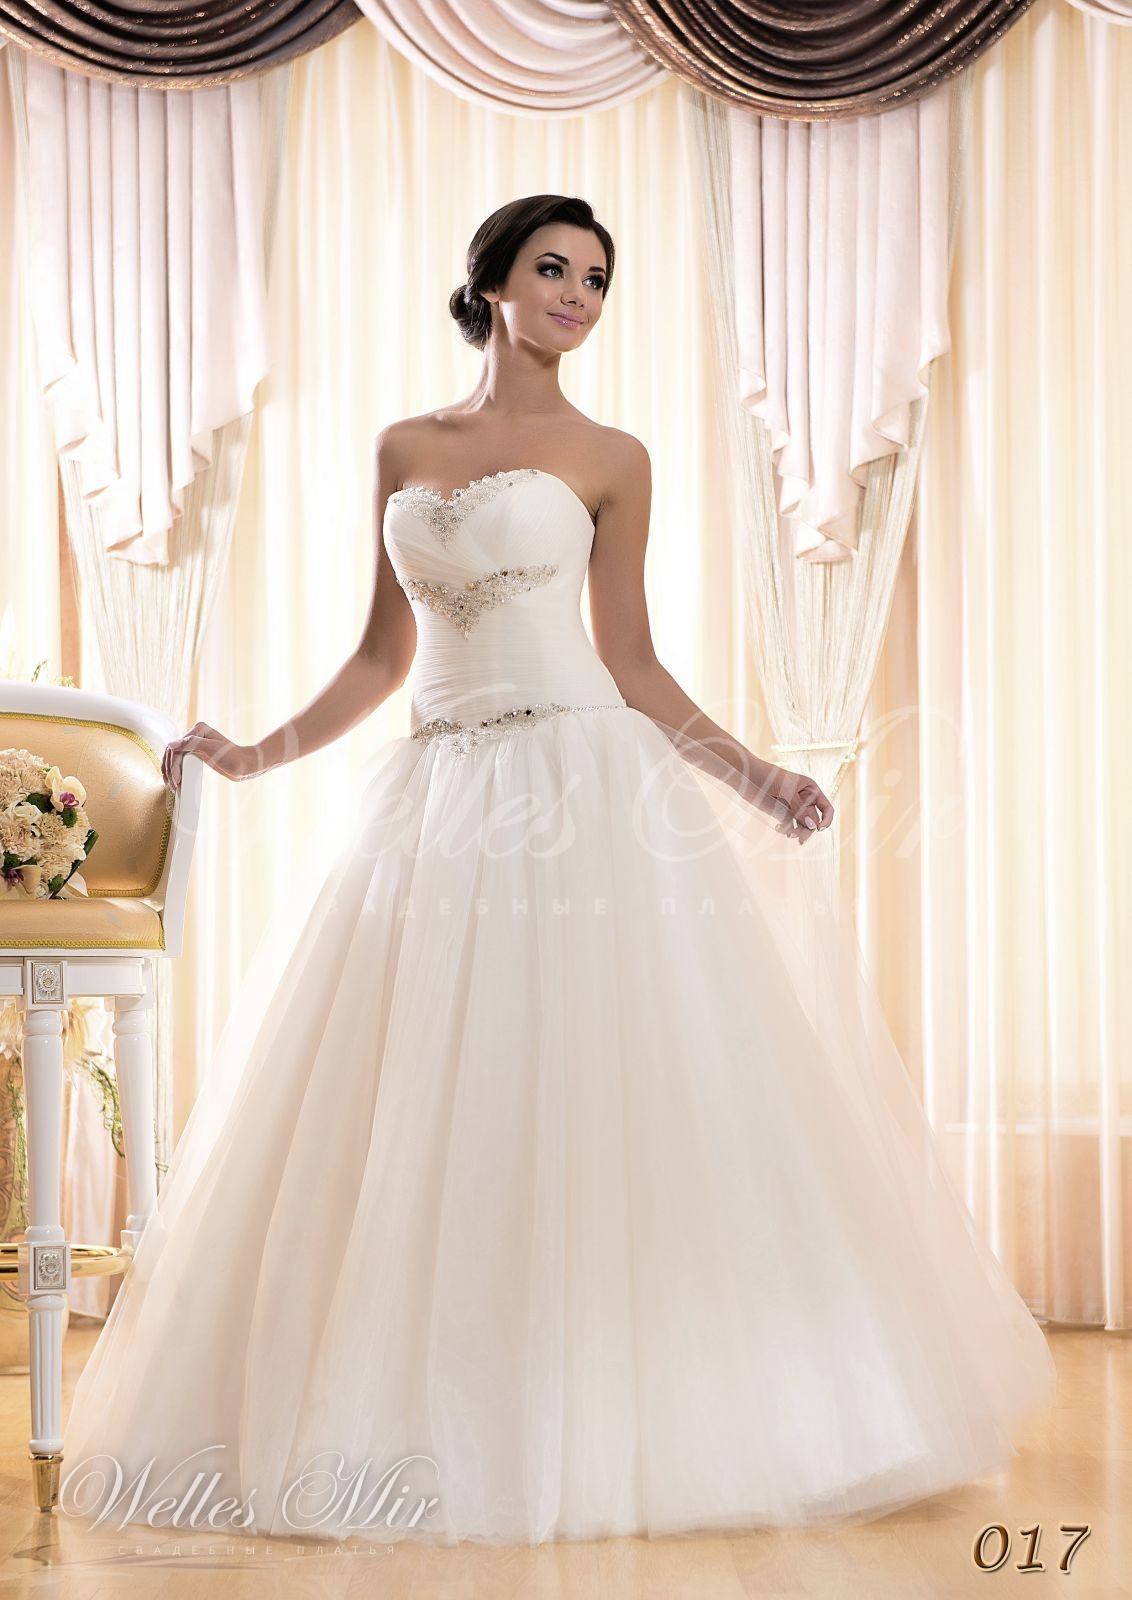 Wedding dresses 017